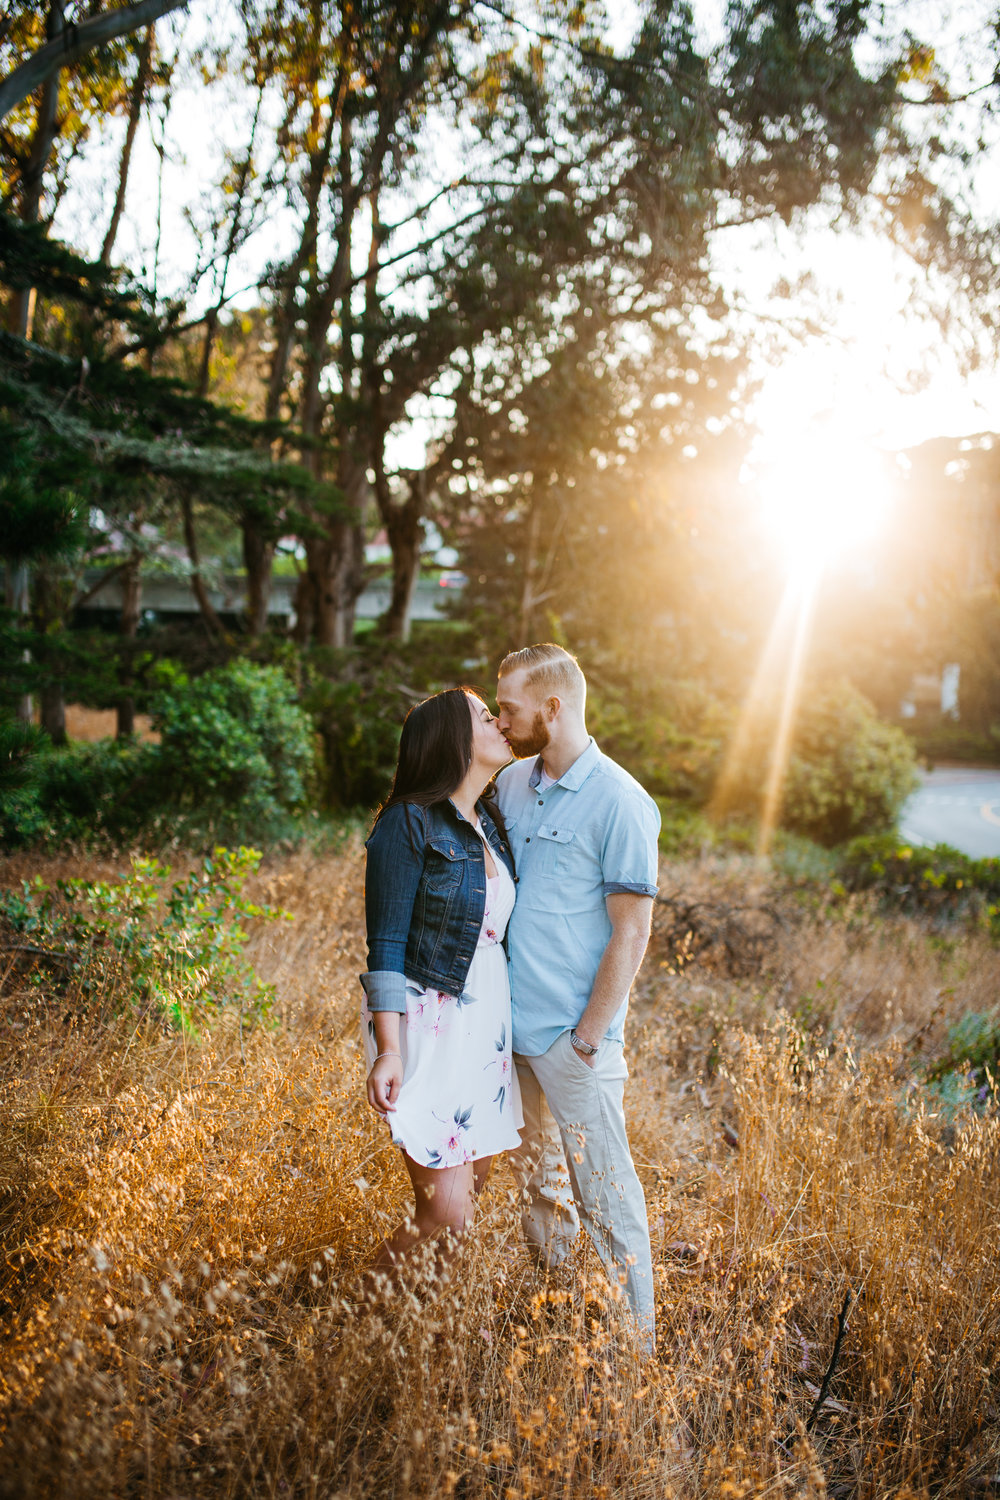 Engagement Photos-San Fransisco-Golden Gate Park-Ranalla Photo & Films-51.jpg